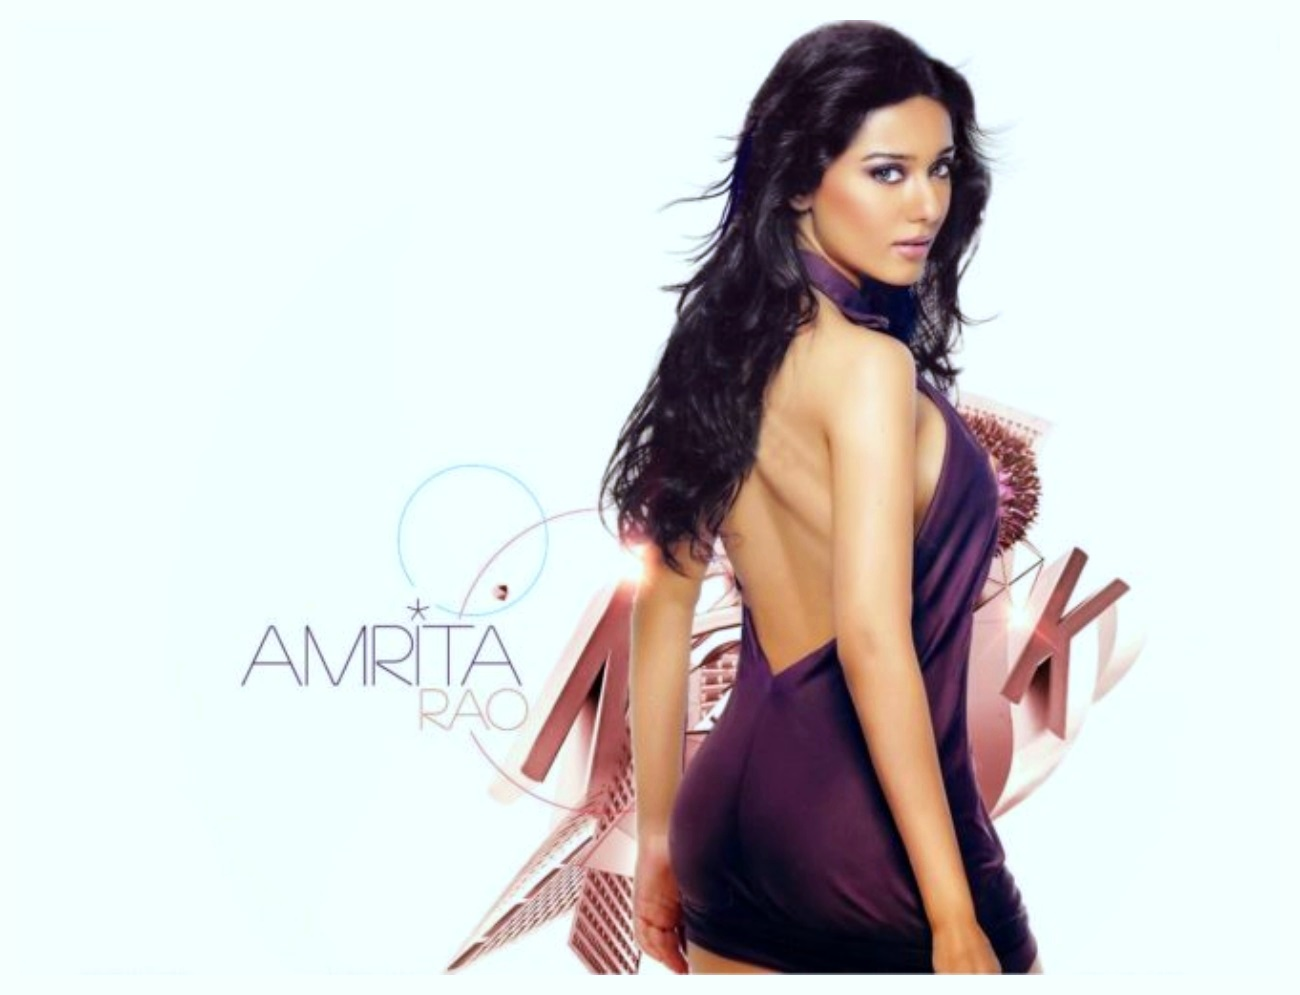 Amrita rao house photos Hindi Movies Online, Telugu Tamil Malayalam Movies Online